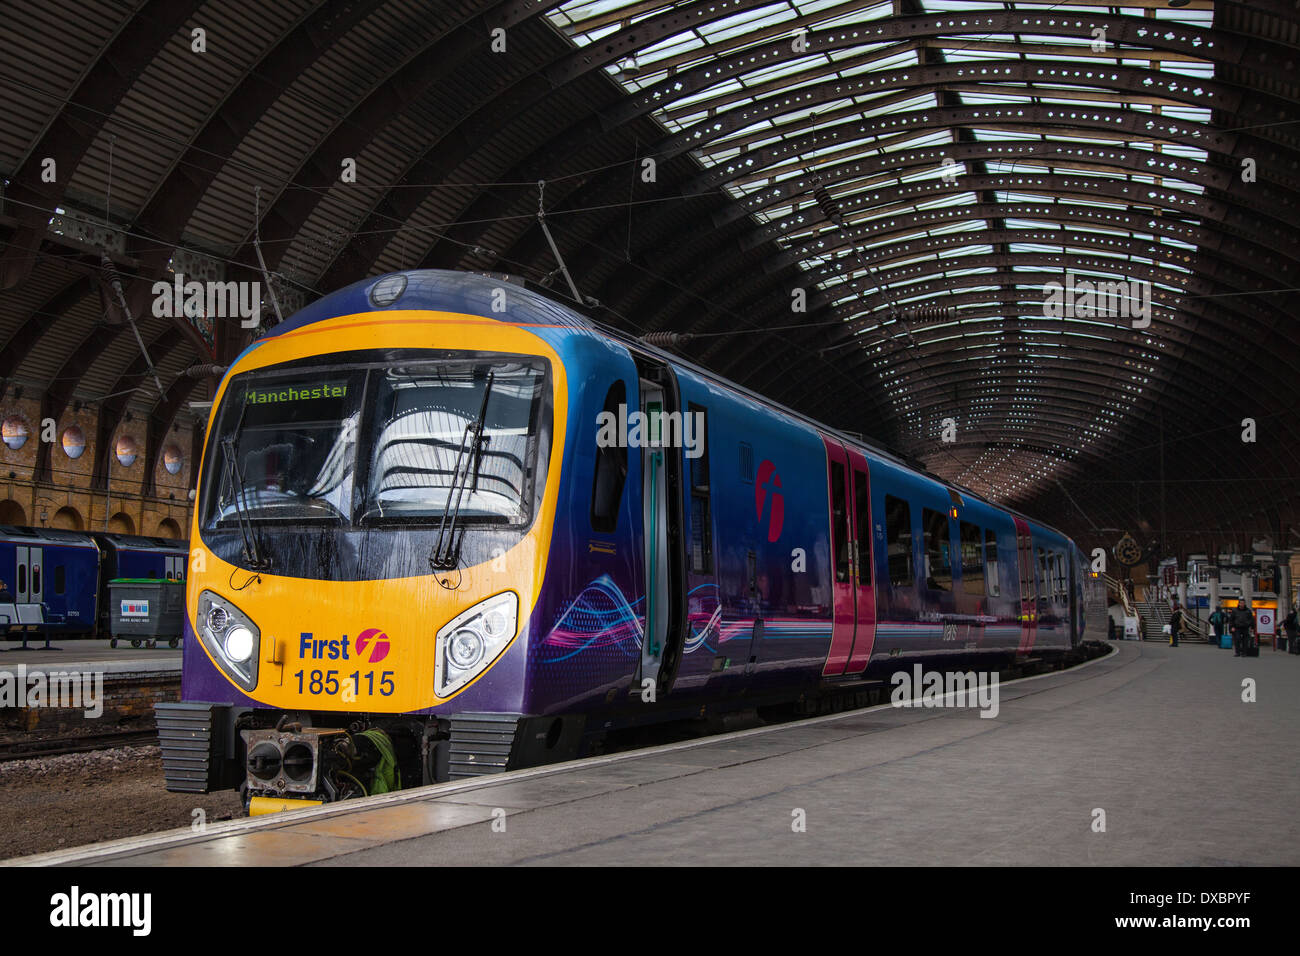 Firstgroup trains TPE; The Class 185 is a diesel multiple-unit passenger train First TransPennine Express, York Stock Photo